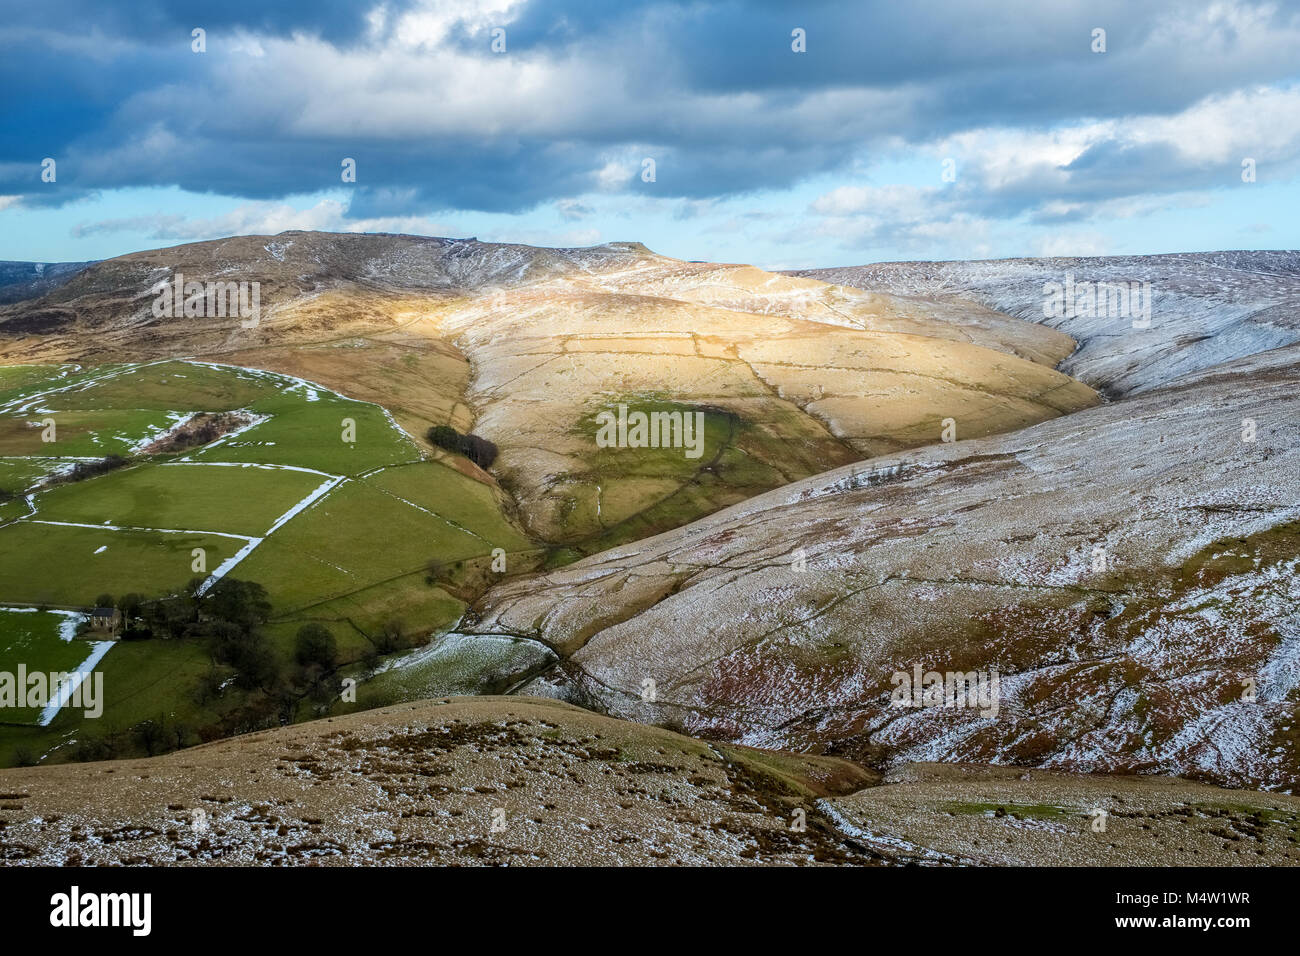 Looking from South Head towards Kinderlow End, Edale Rocks, Swine's Back, Edale Cross. Kinder Scout, Peak District - Stock Image